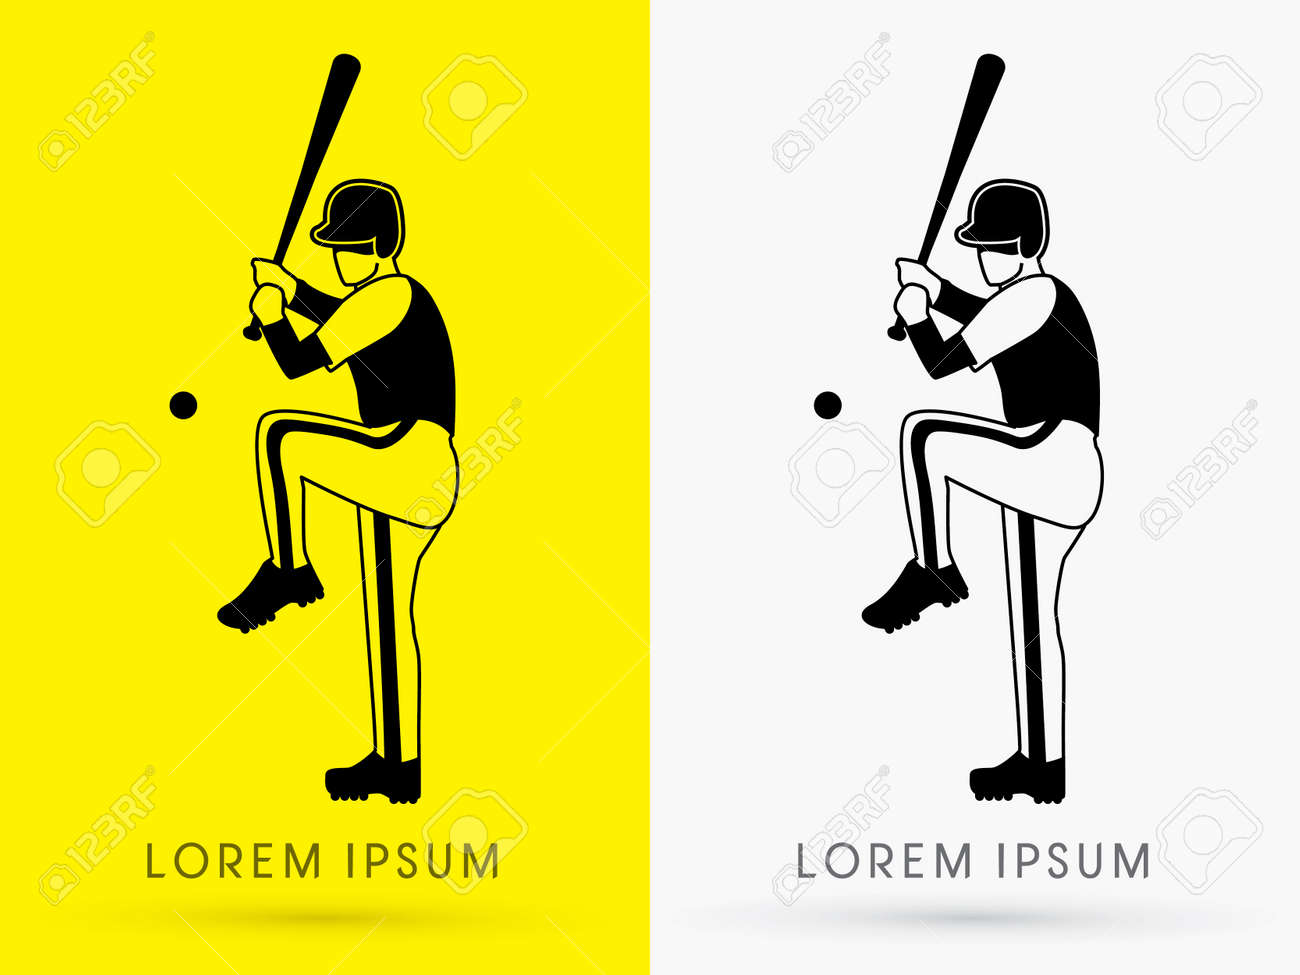 baseball player ready to hit a ball outline logo symbol icon